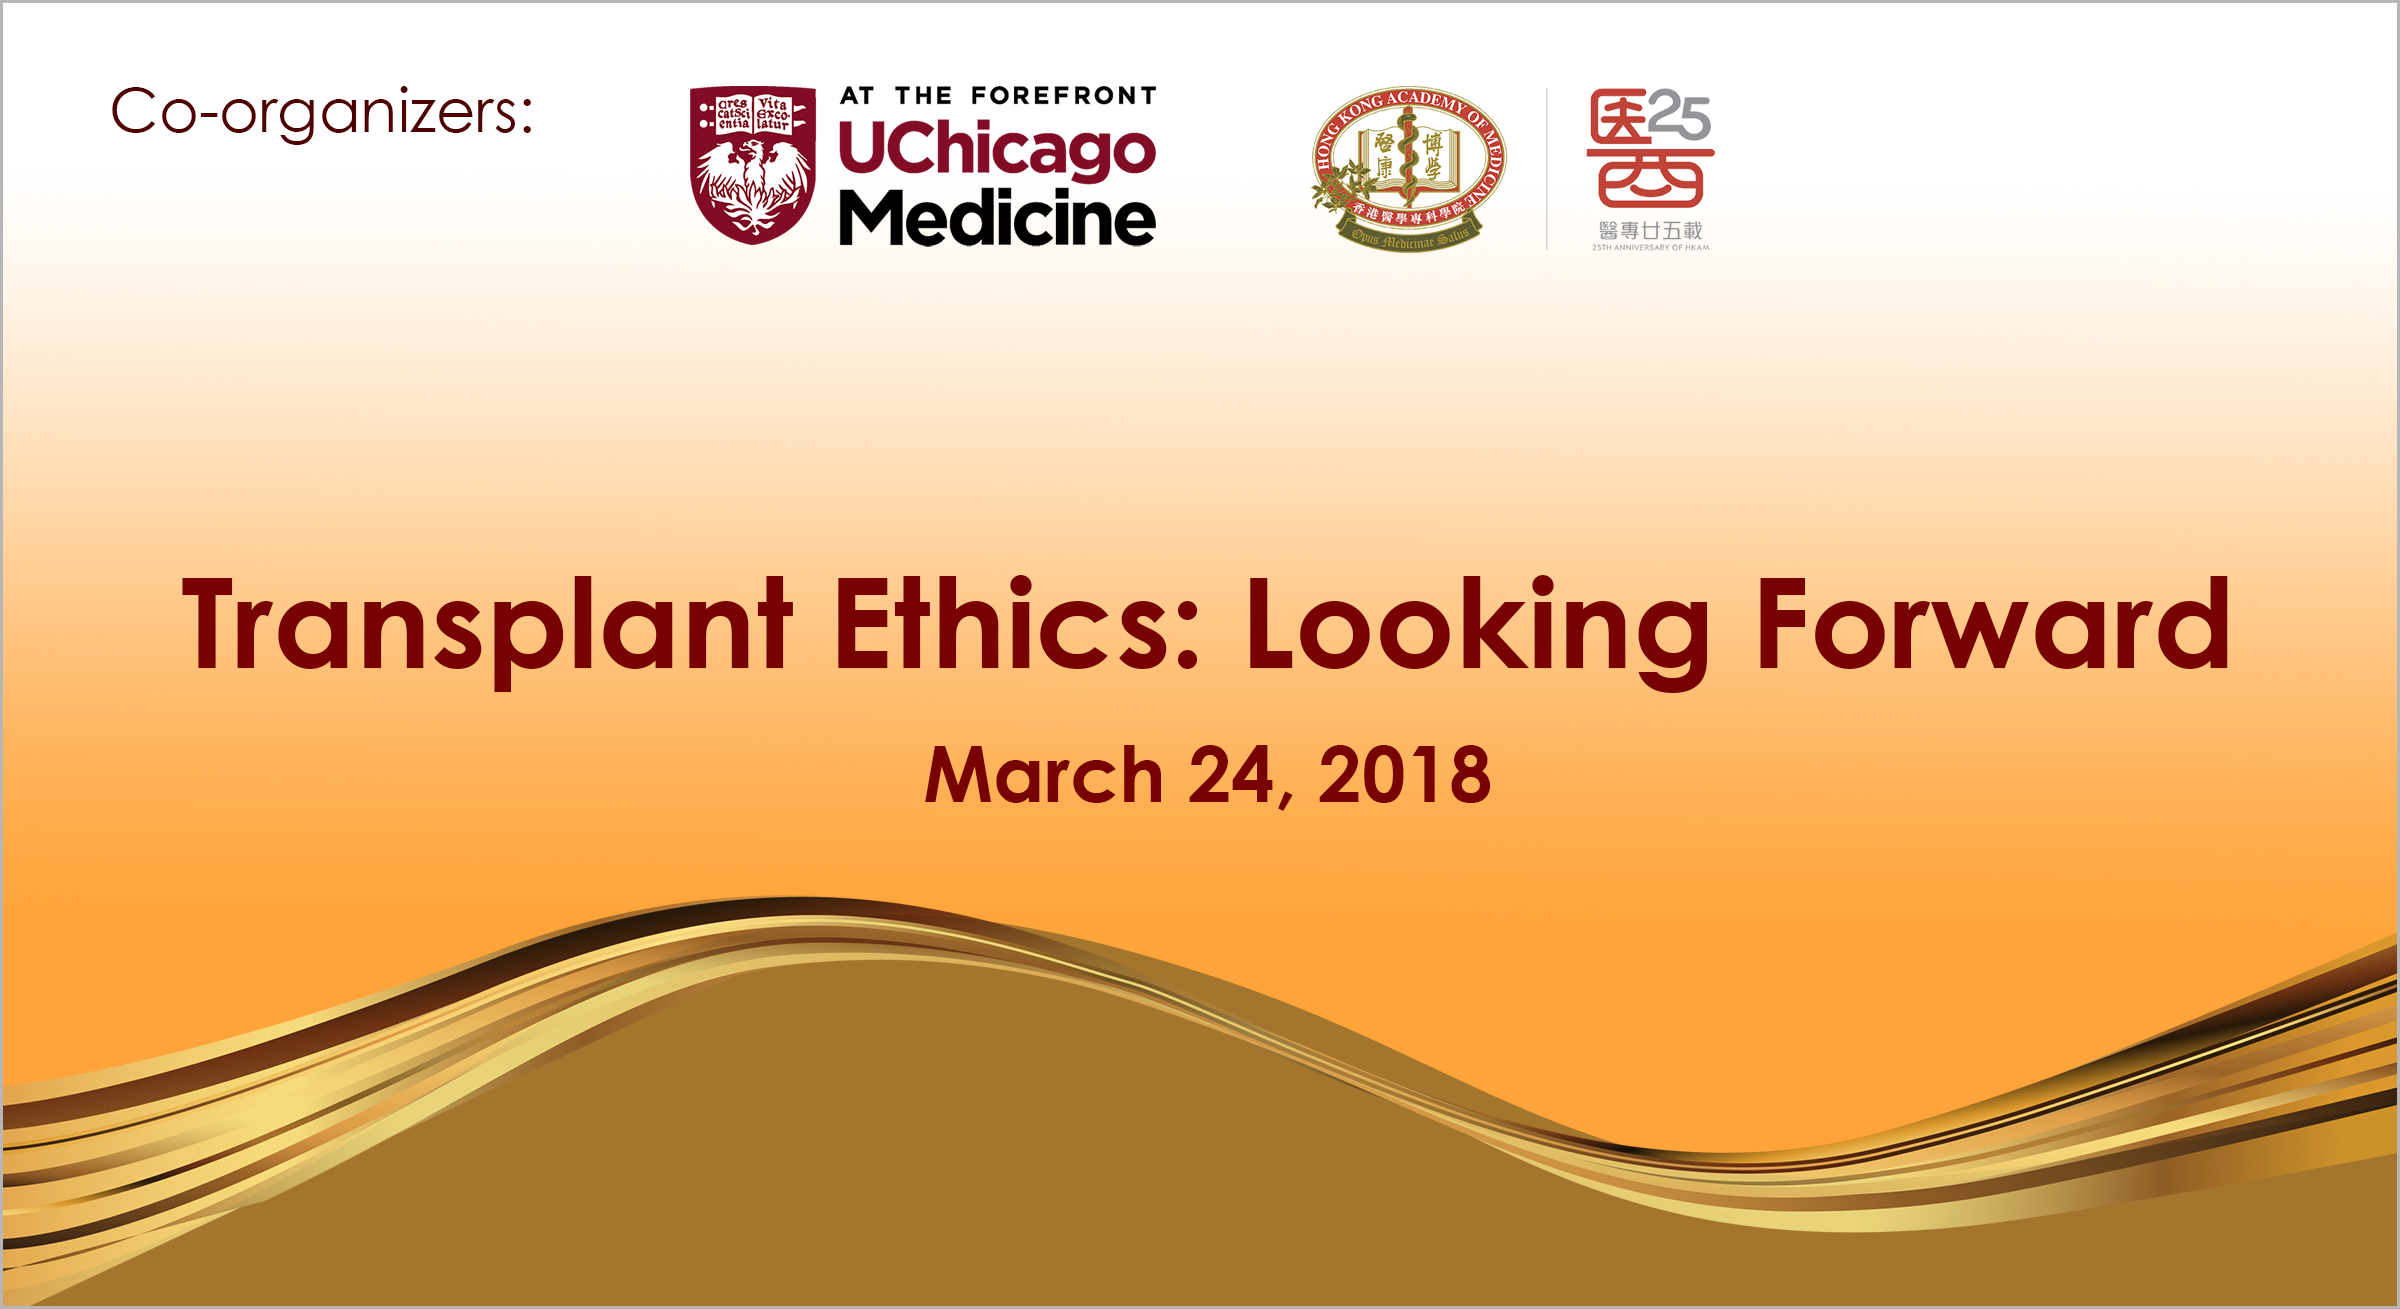 Transplant Ethics: Looking Forward